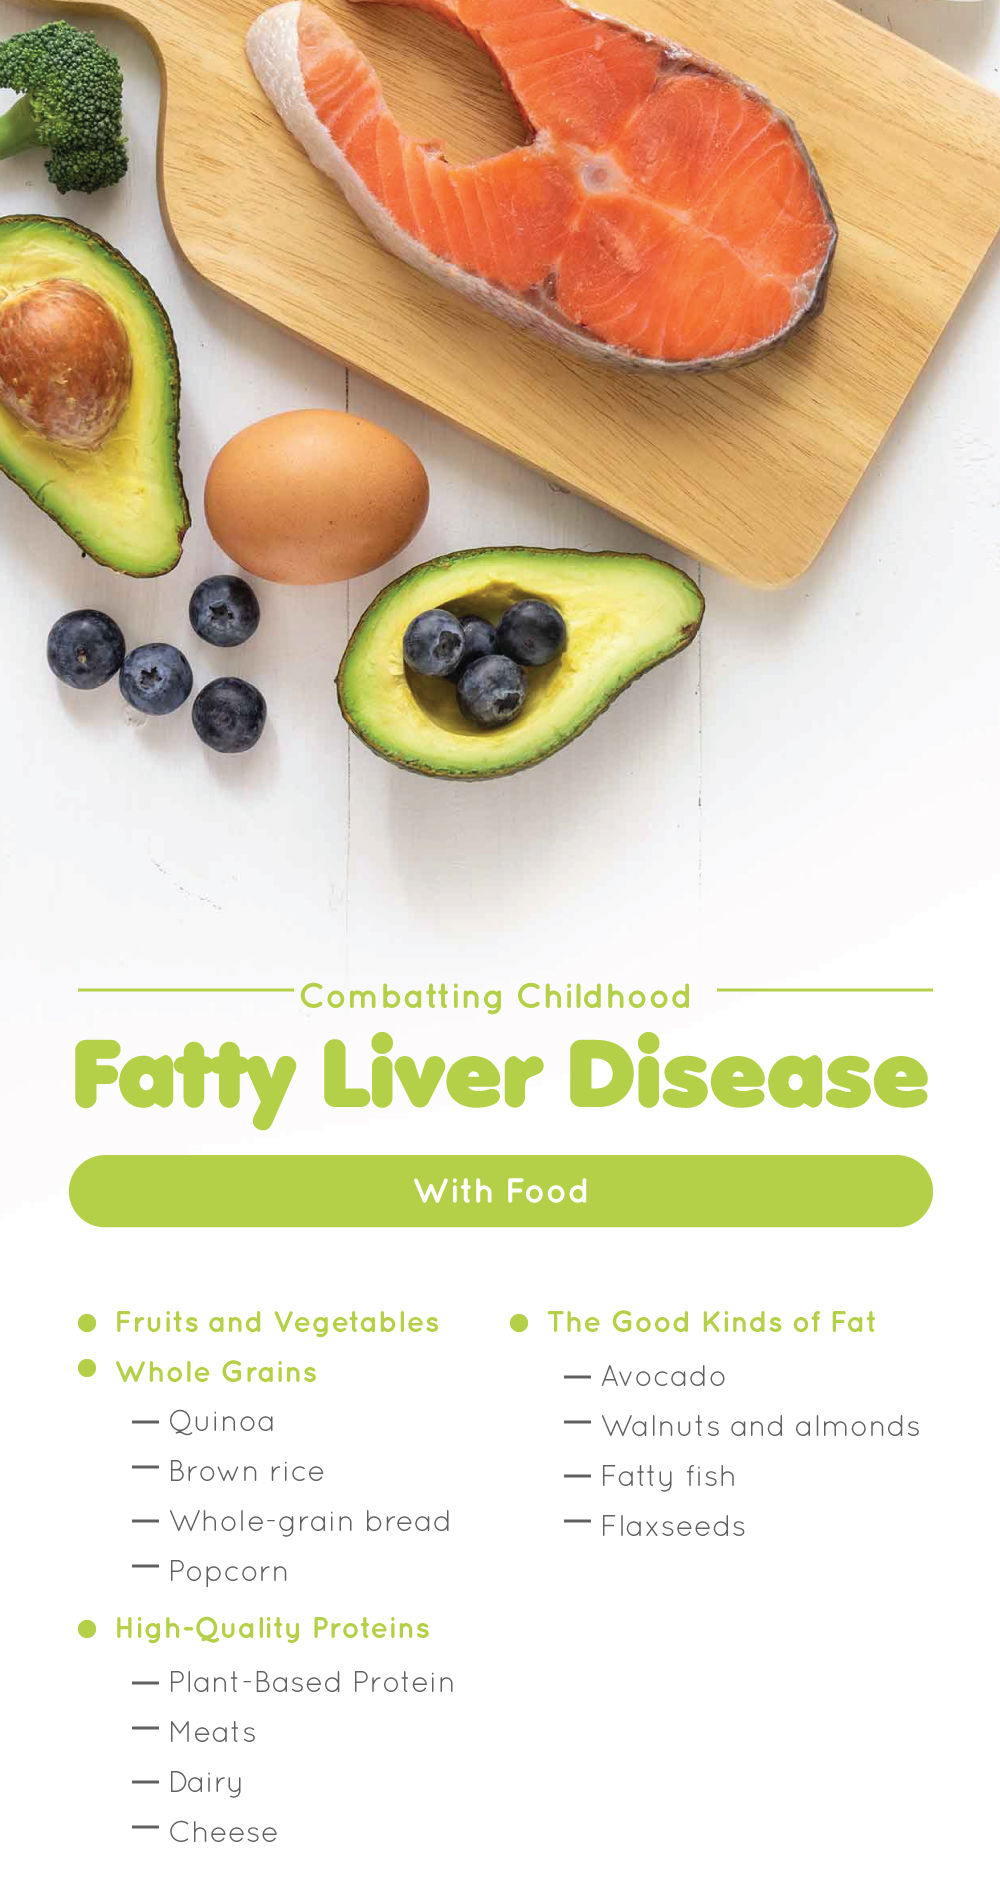 Combatting Childhood Fatty Liver Disease With Food